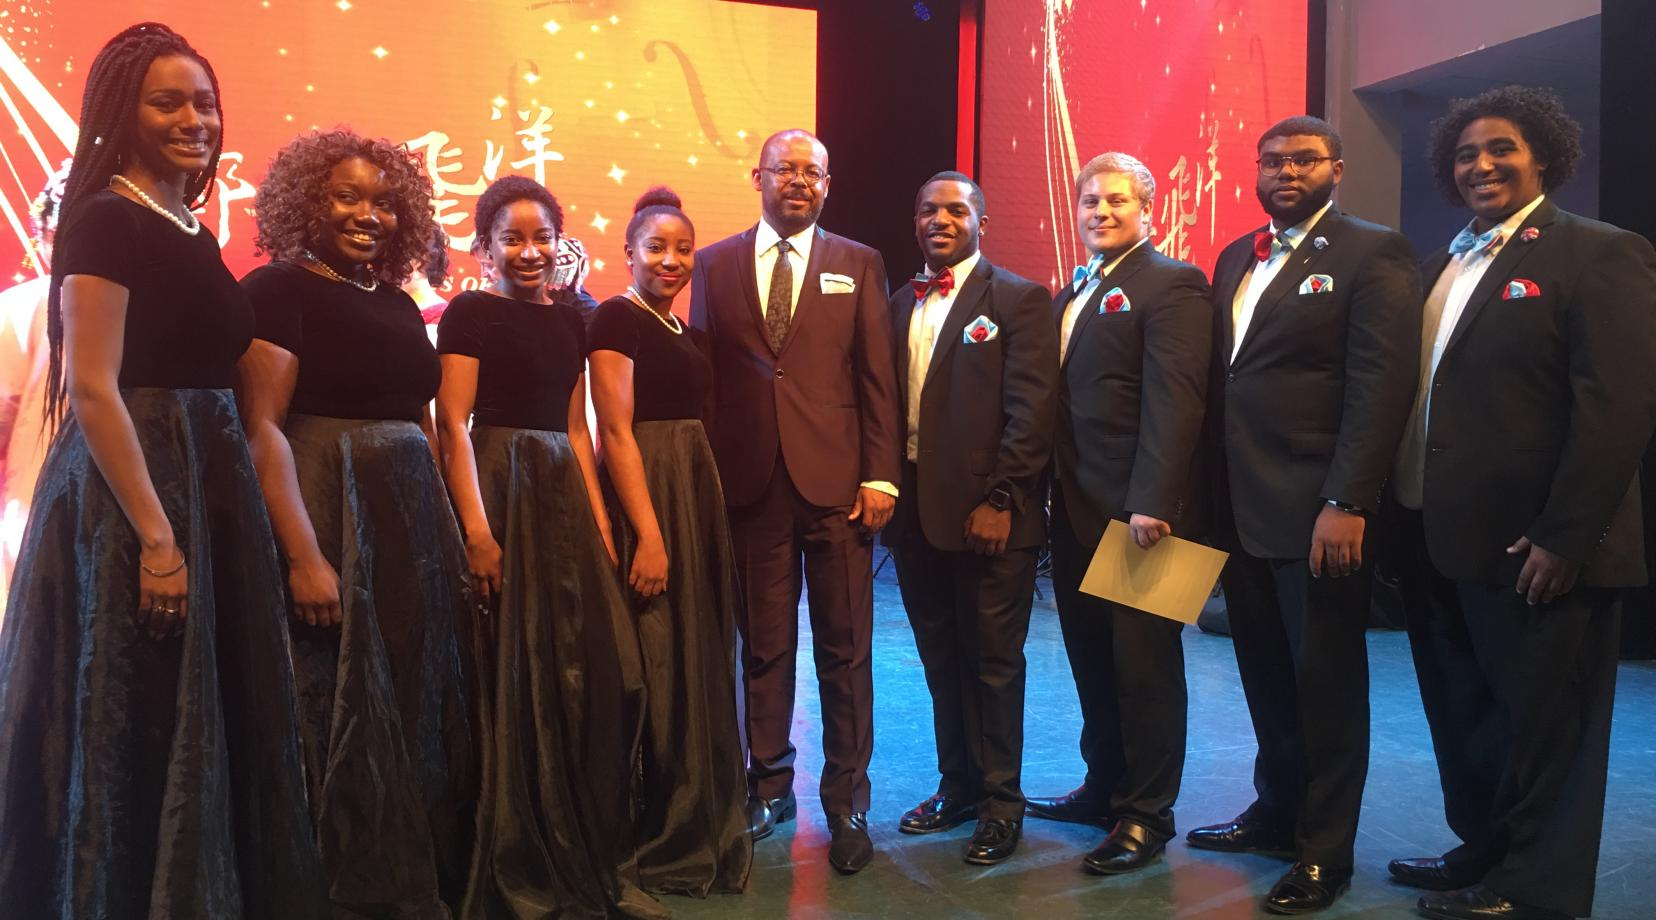 <p>The DSU Singers in China – (l-r) Chelsea Taylor, Jaselah White, Jasmine Clementson, Cache Smith, Dr. Lloyd Mallory, Jr., Tylor Brown, Mitchell Clark, George Mensah, Jr., and Willie Shepherd.</p>